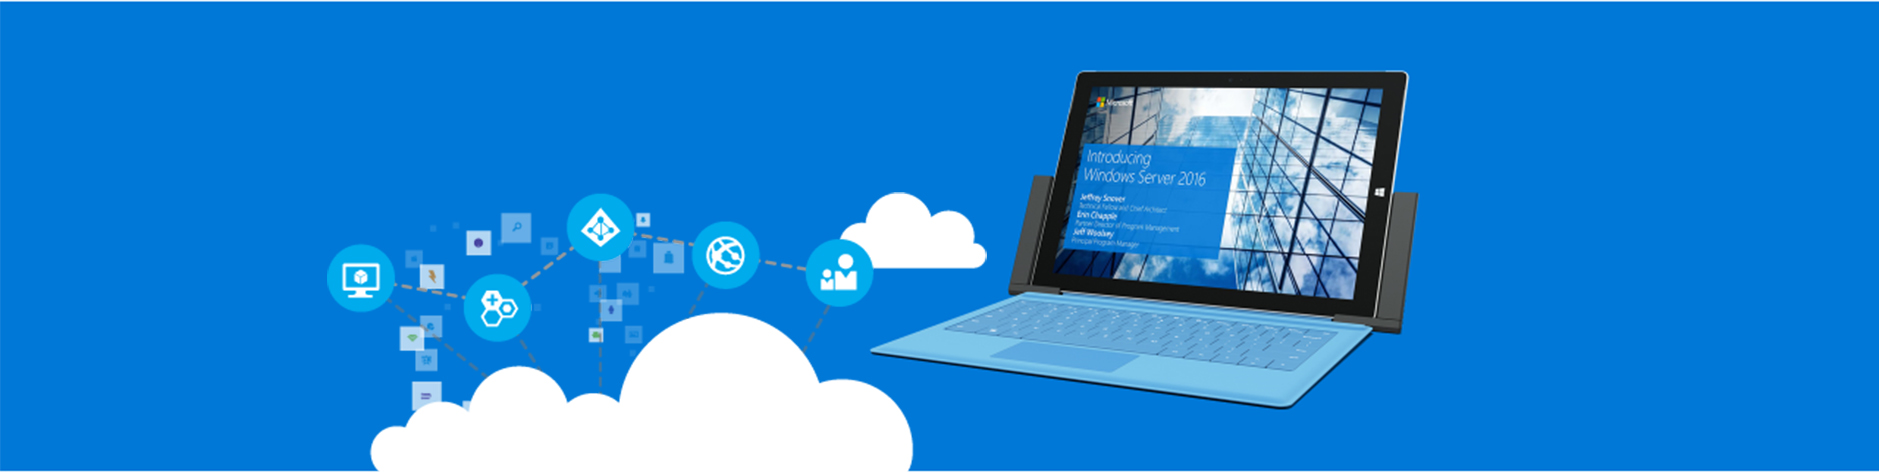 Windows server 2016 of Azure